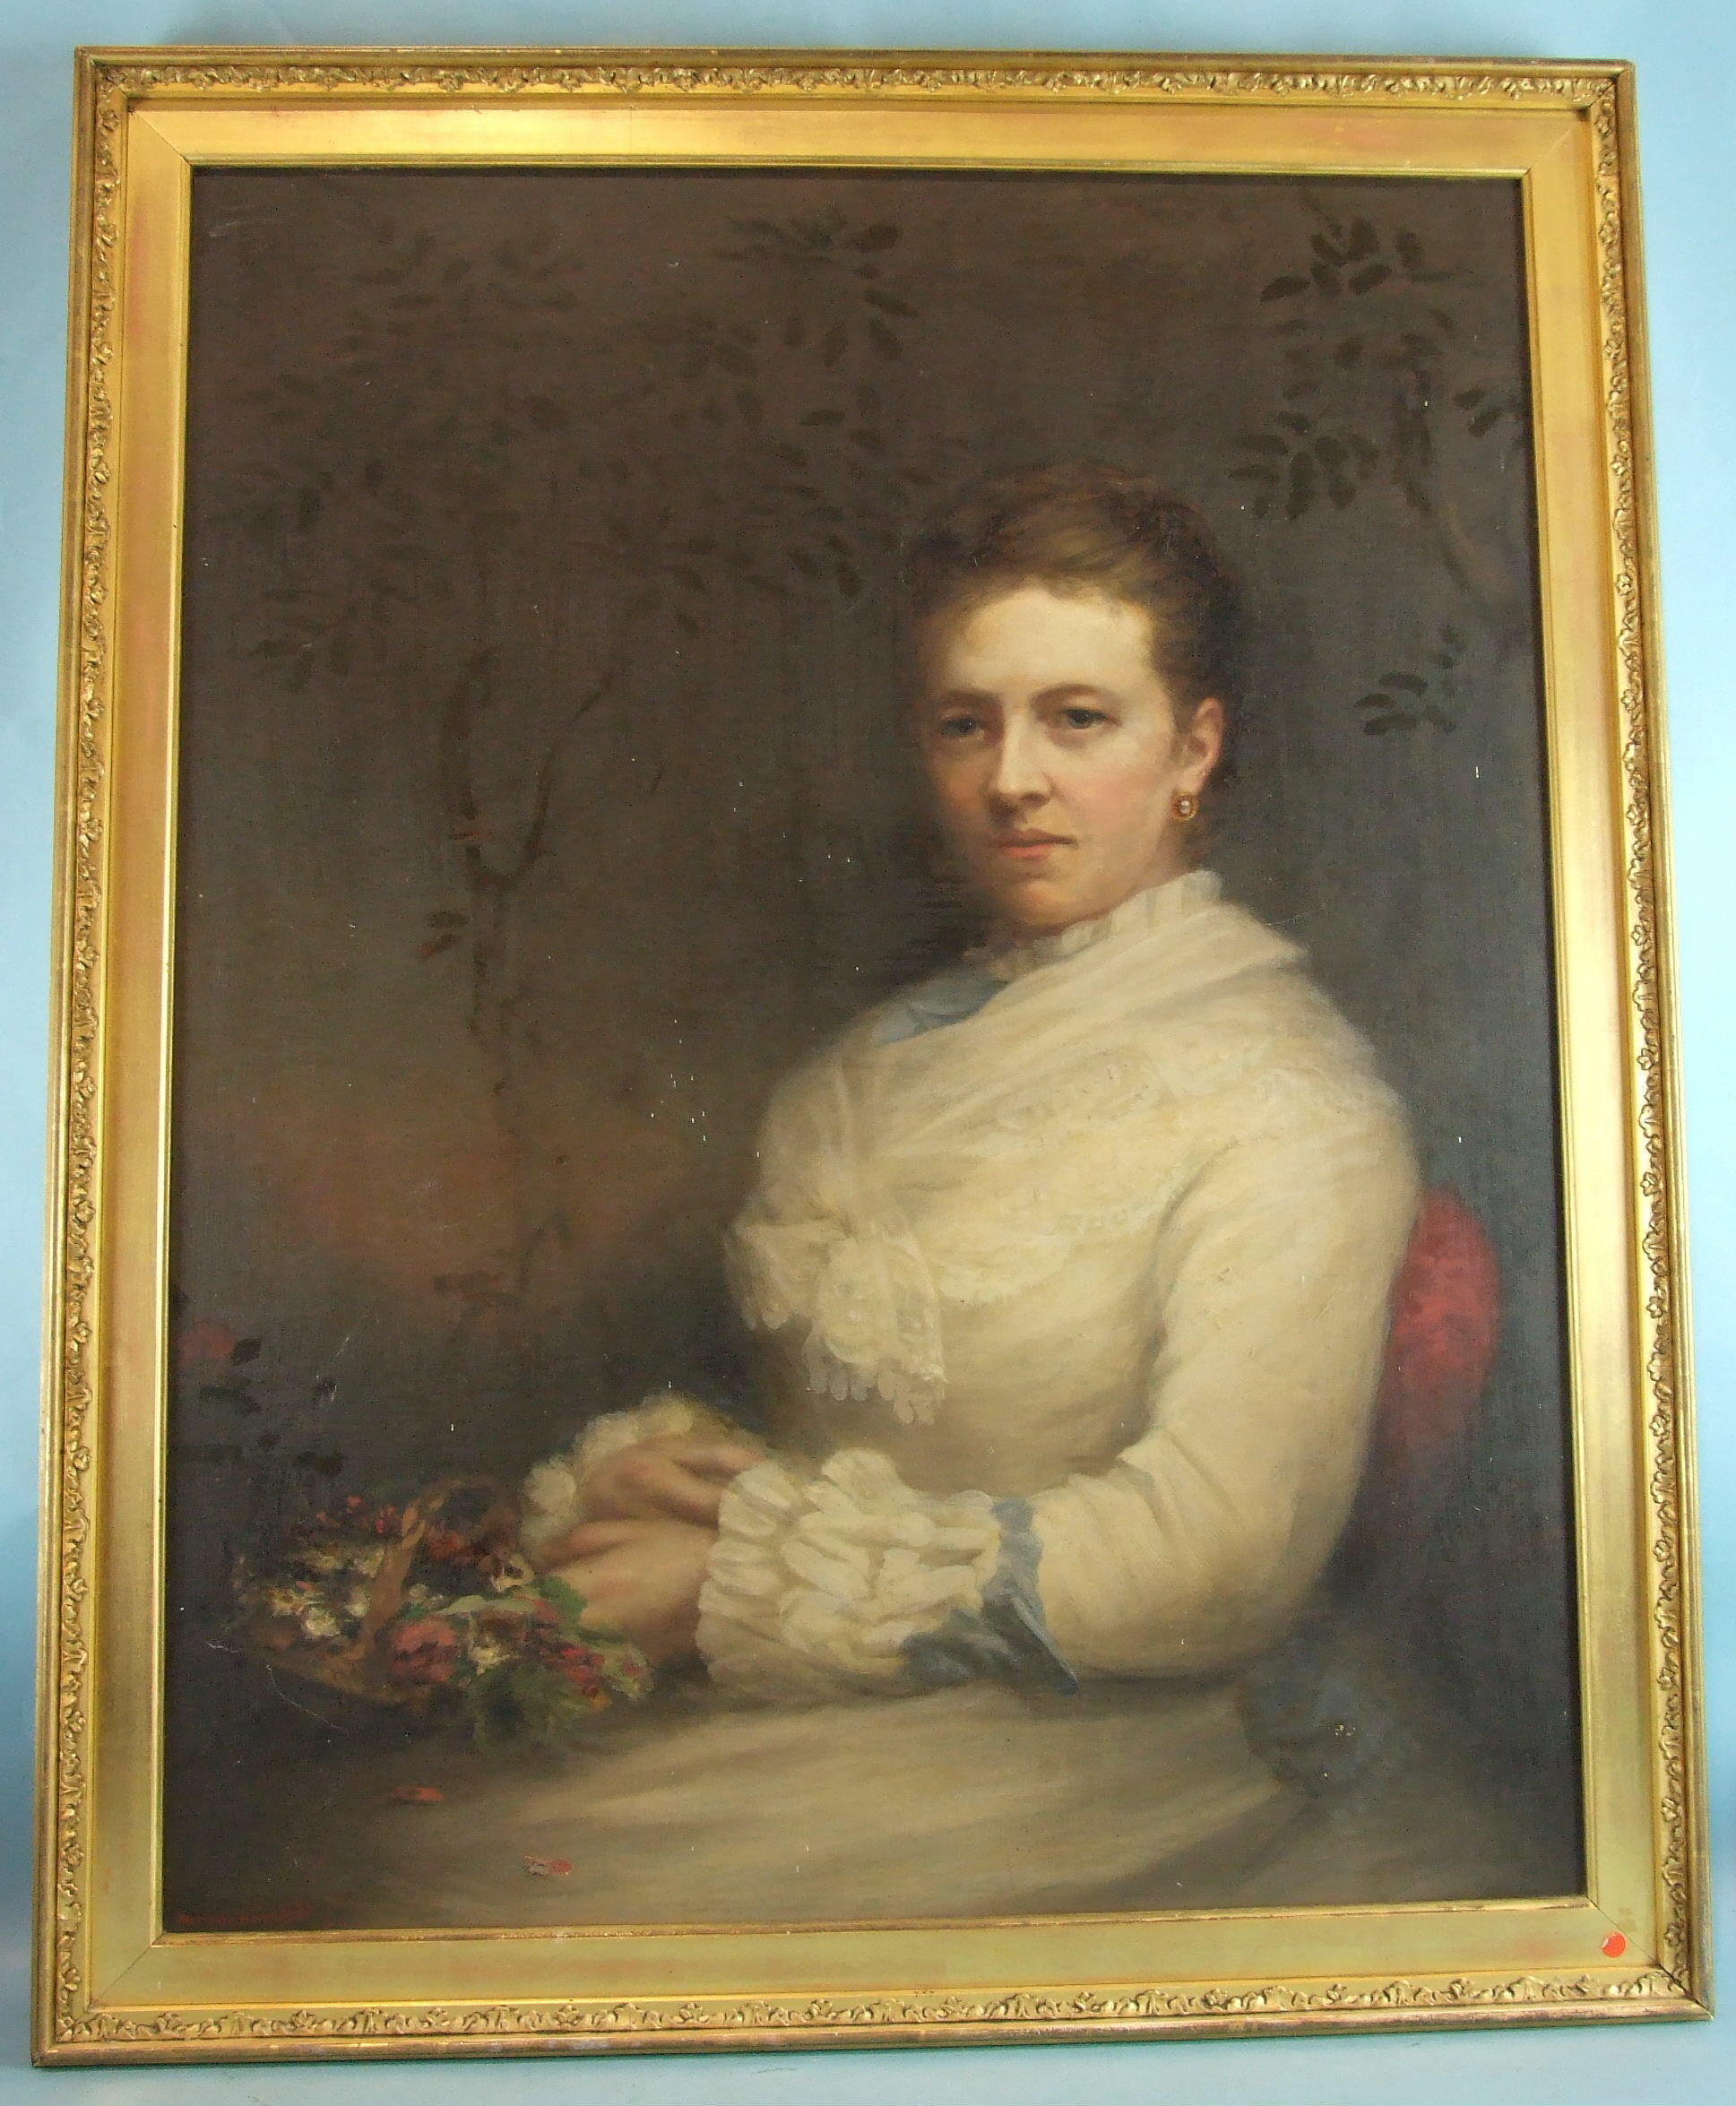 Lot 9 - John Horsburgh (Scottish, 1835-1924) PORTRAIT OF A LADY, SEATED AND WEARING A WHITE DRESS, HOLDING A